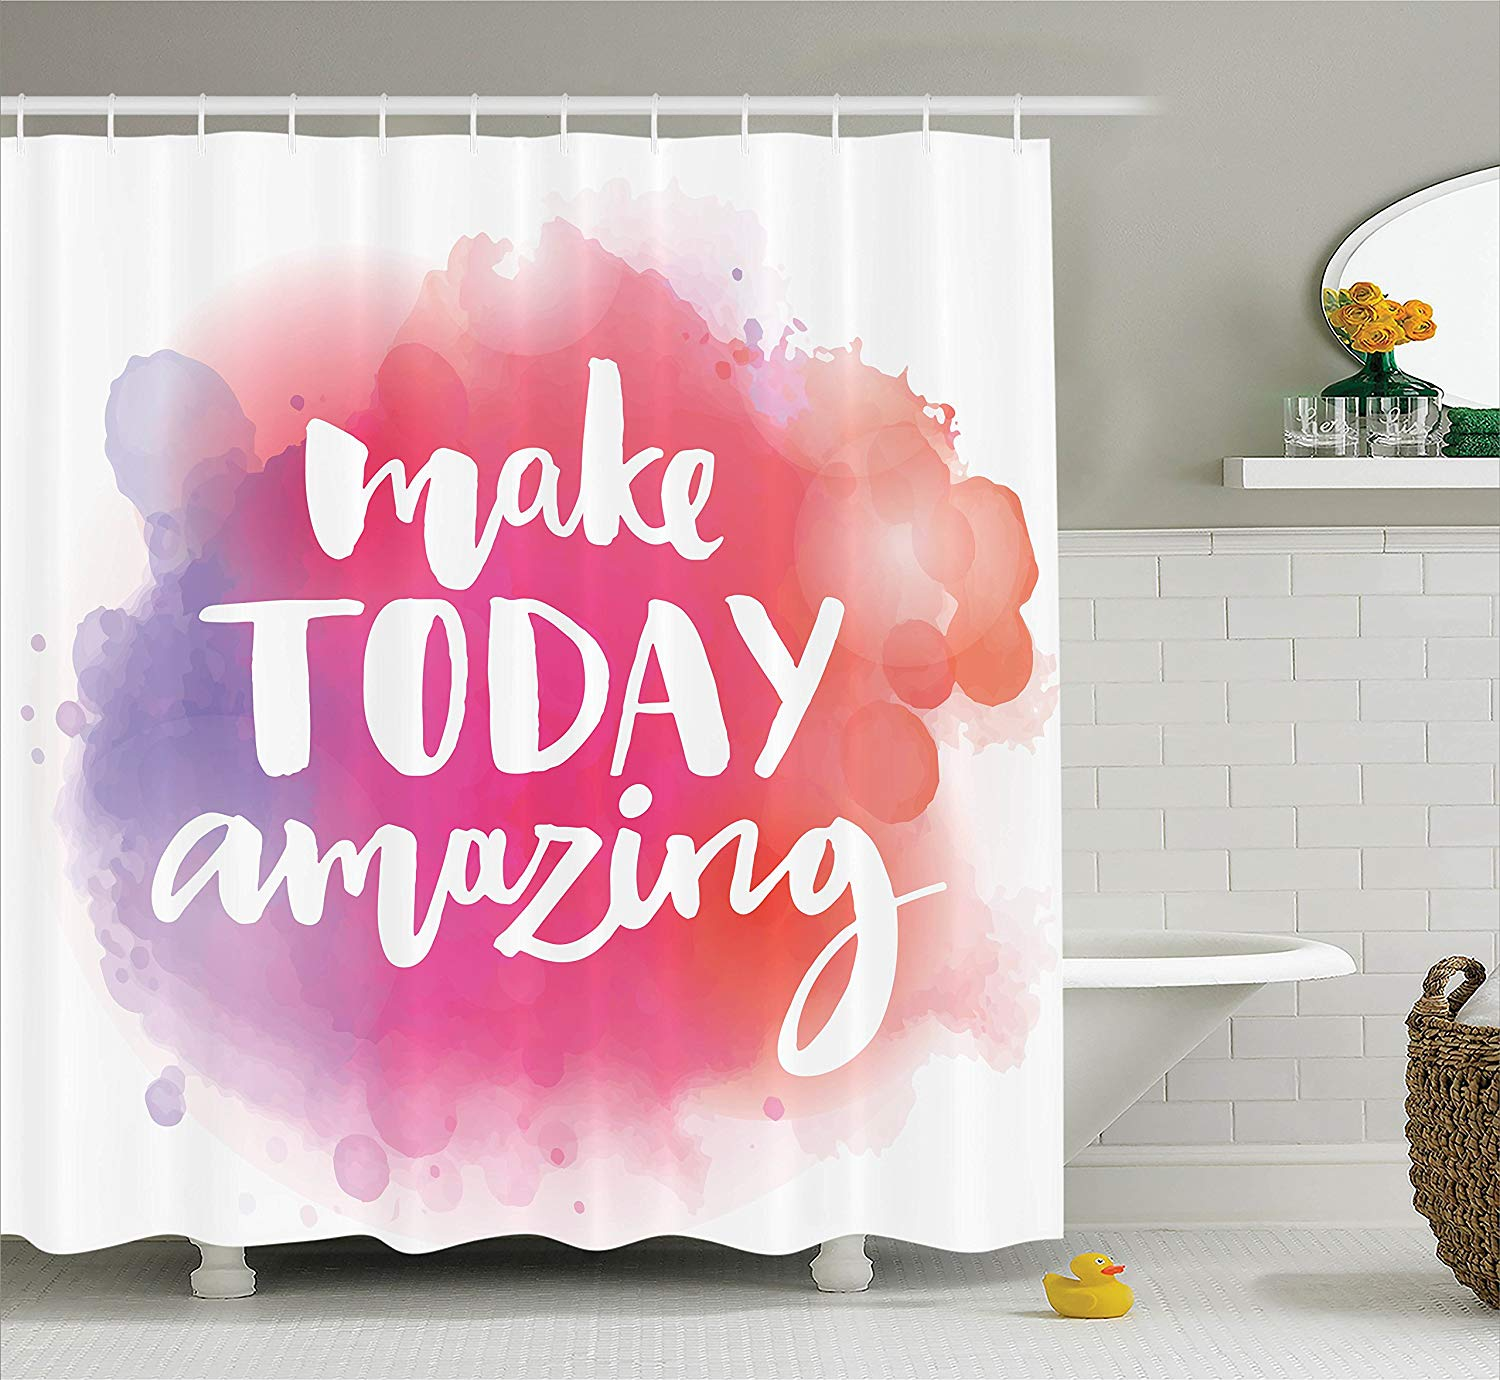 Quotes Decor Collection Make Today Amazing Inspirational Quote on Colorful Watercolor Splash Background Polyester Fabric image